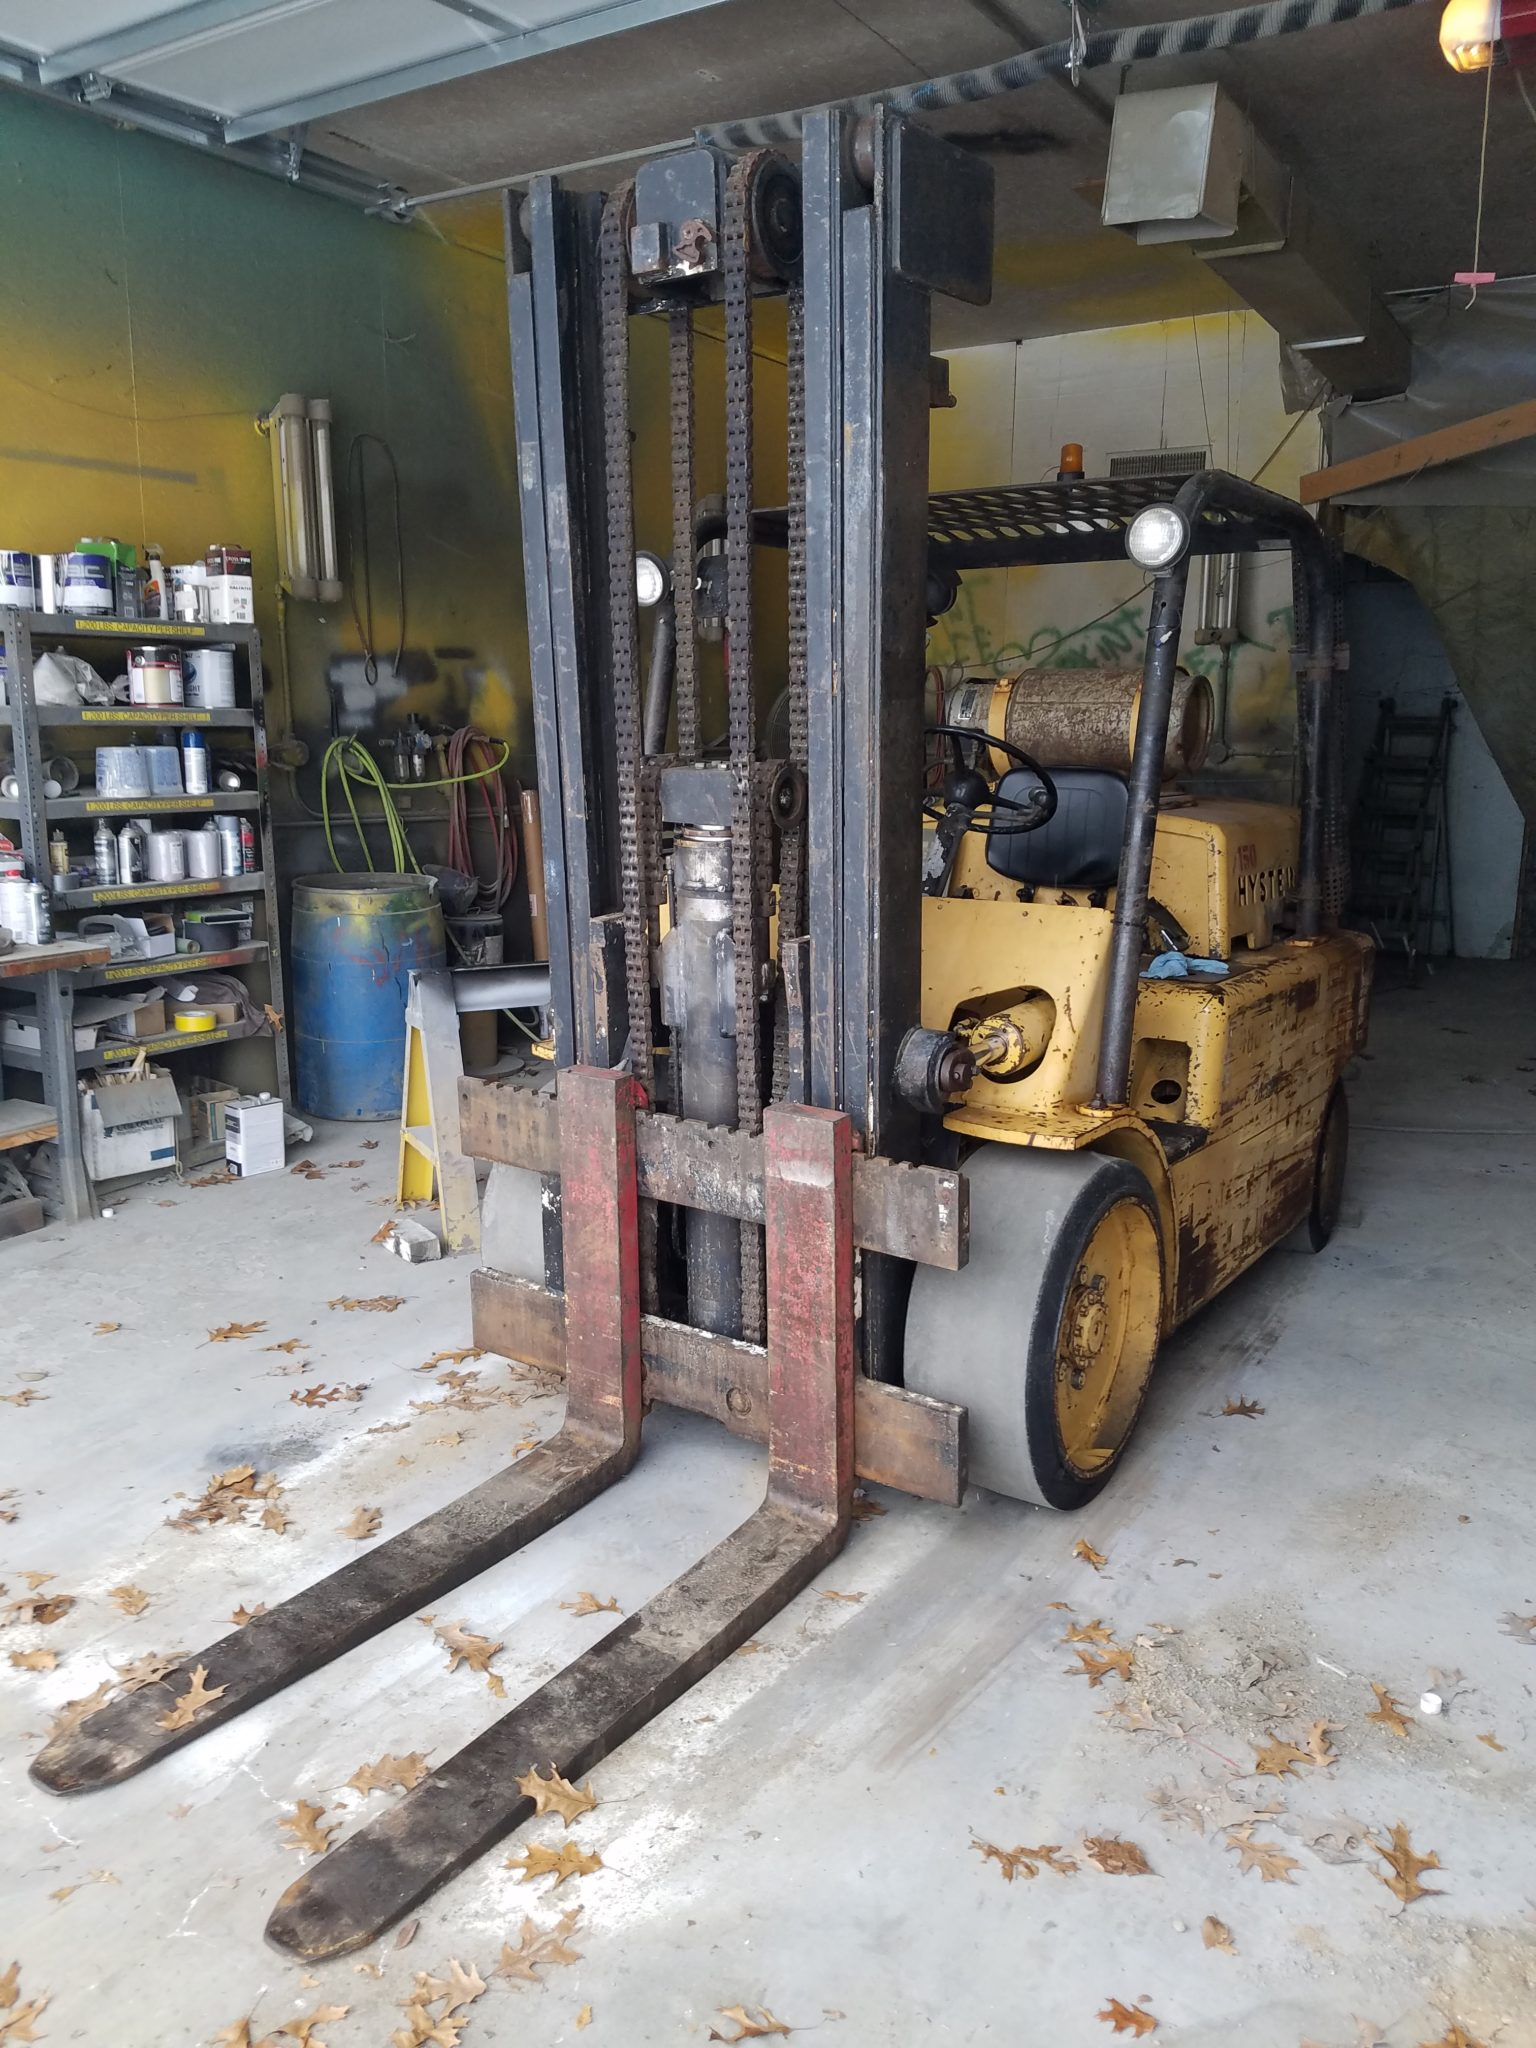 15,000lb. Capacity Hyster S150 Forklift For Sale 7.5 Ton